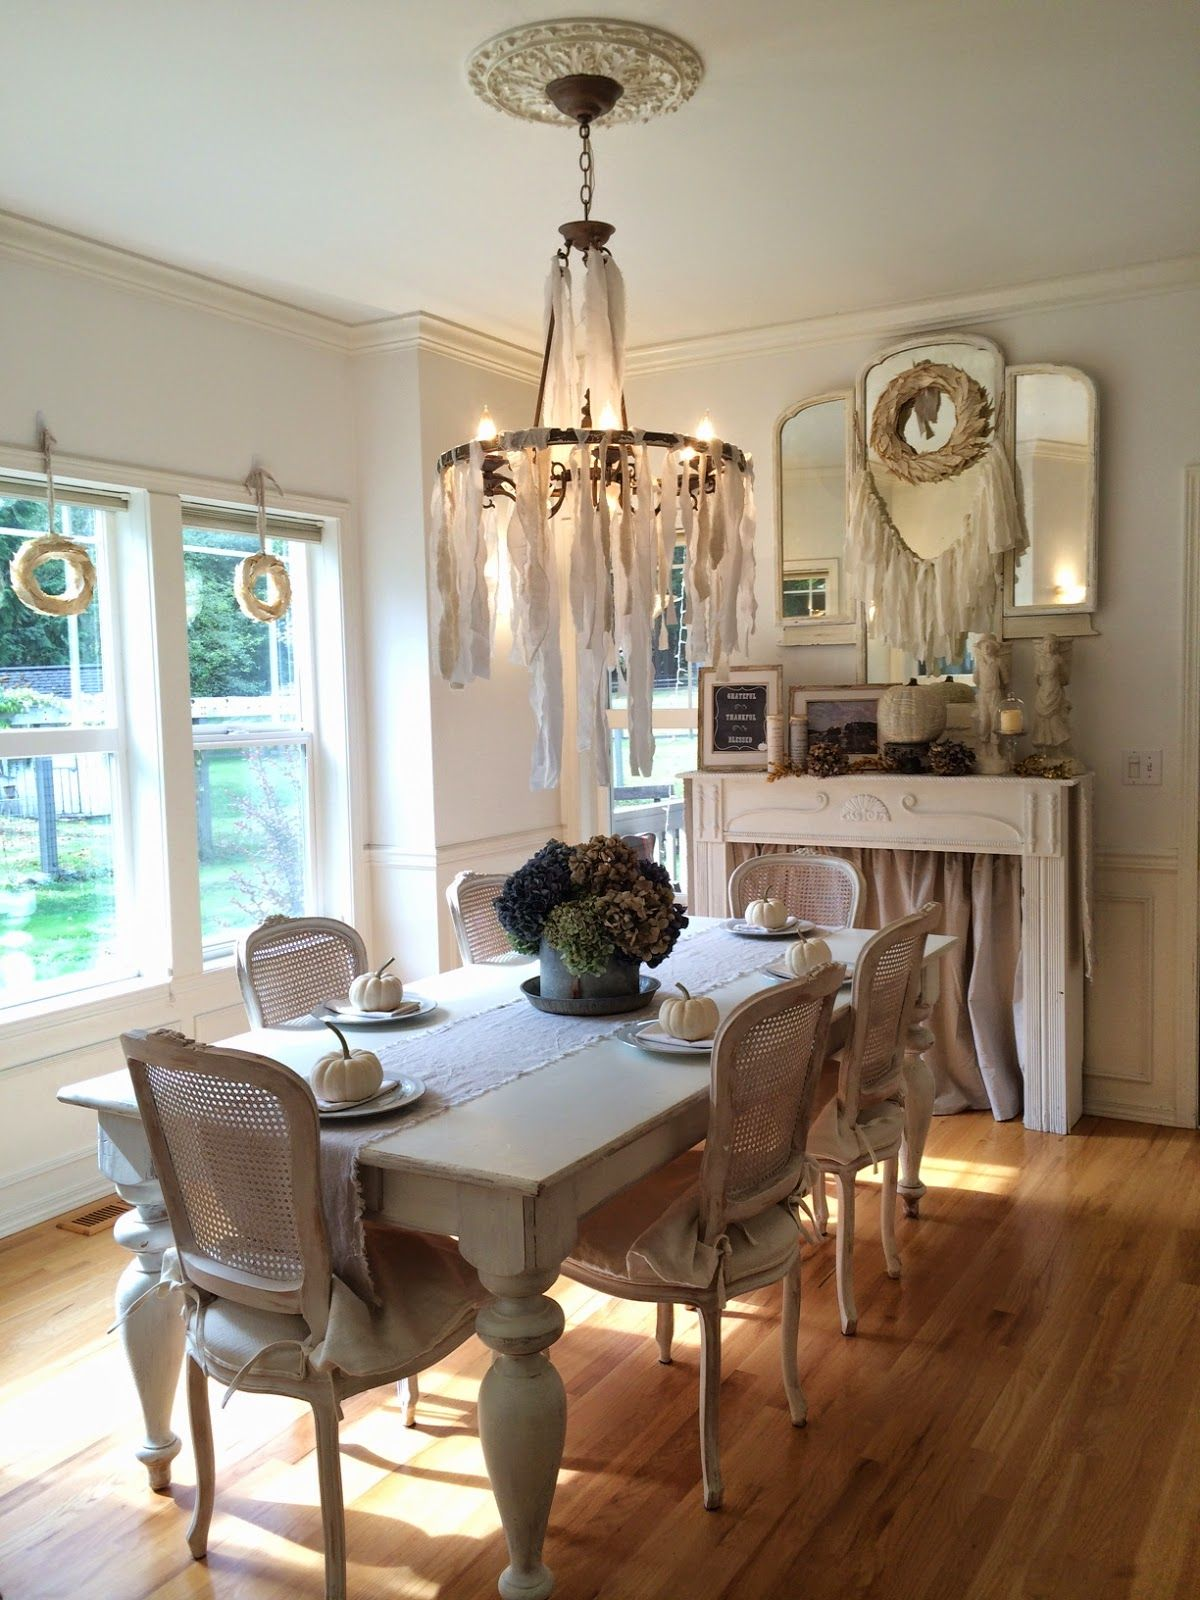 Little Farmstead Farmhouse Dining Room How I Found My Style Sundays